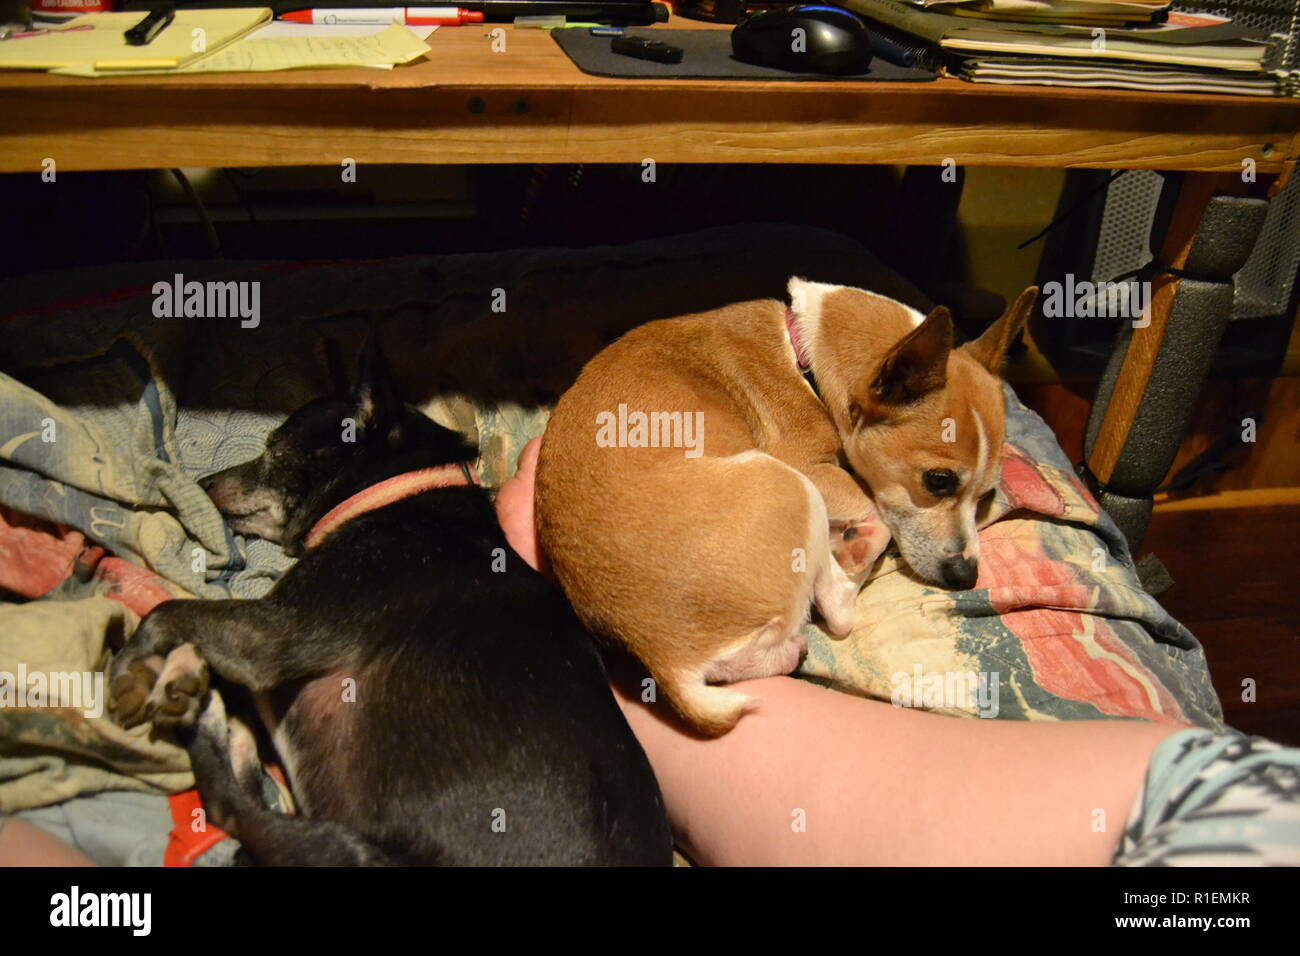 Mountain Feist and Jack Russell dogs sleeping on the couch. - Stock Image